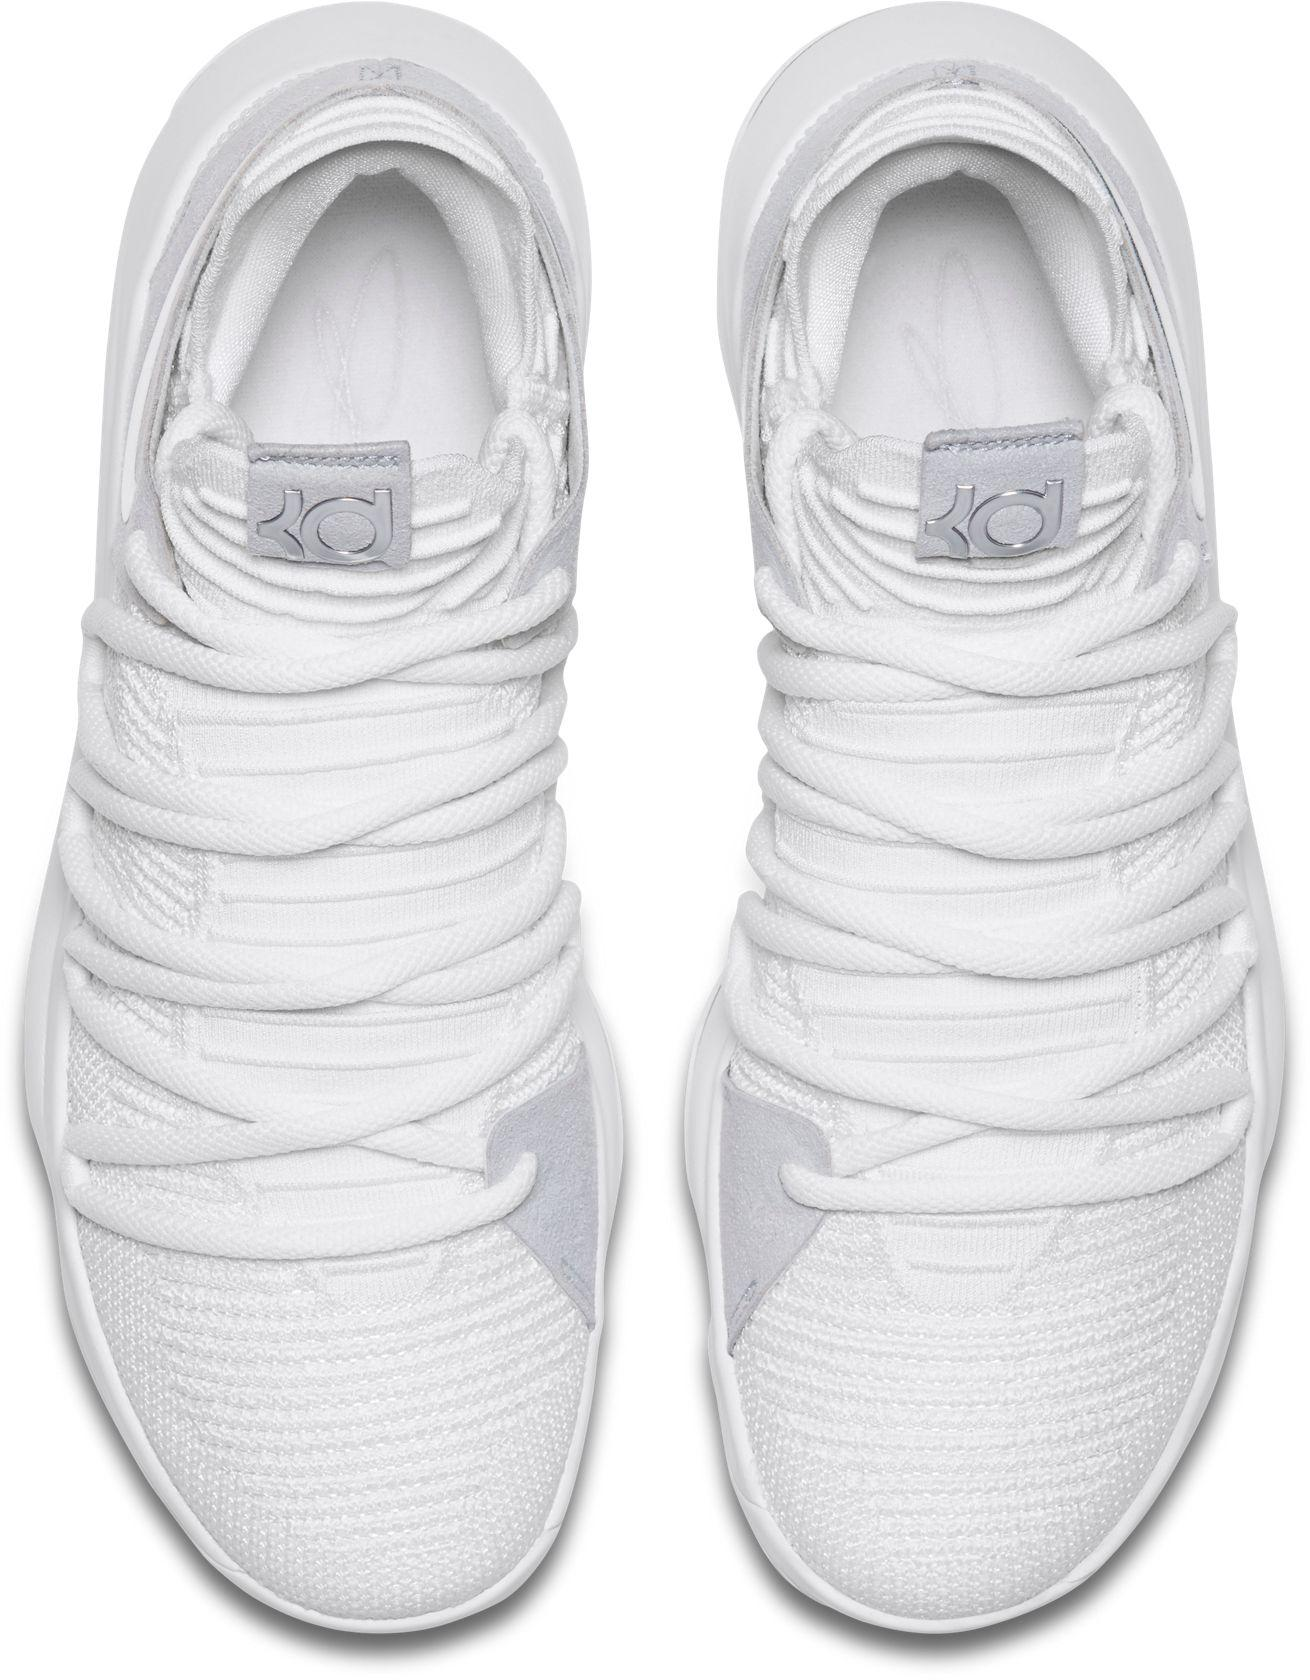 Nike - White Zoom Kd 10 Basketball Shoes for Men - Lyst